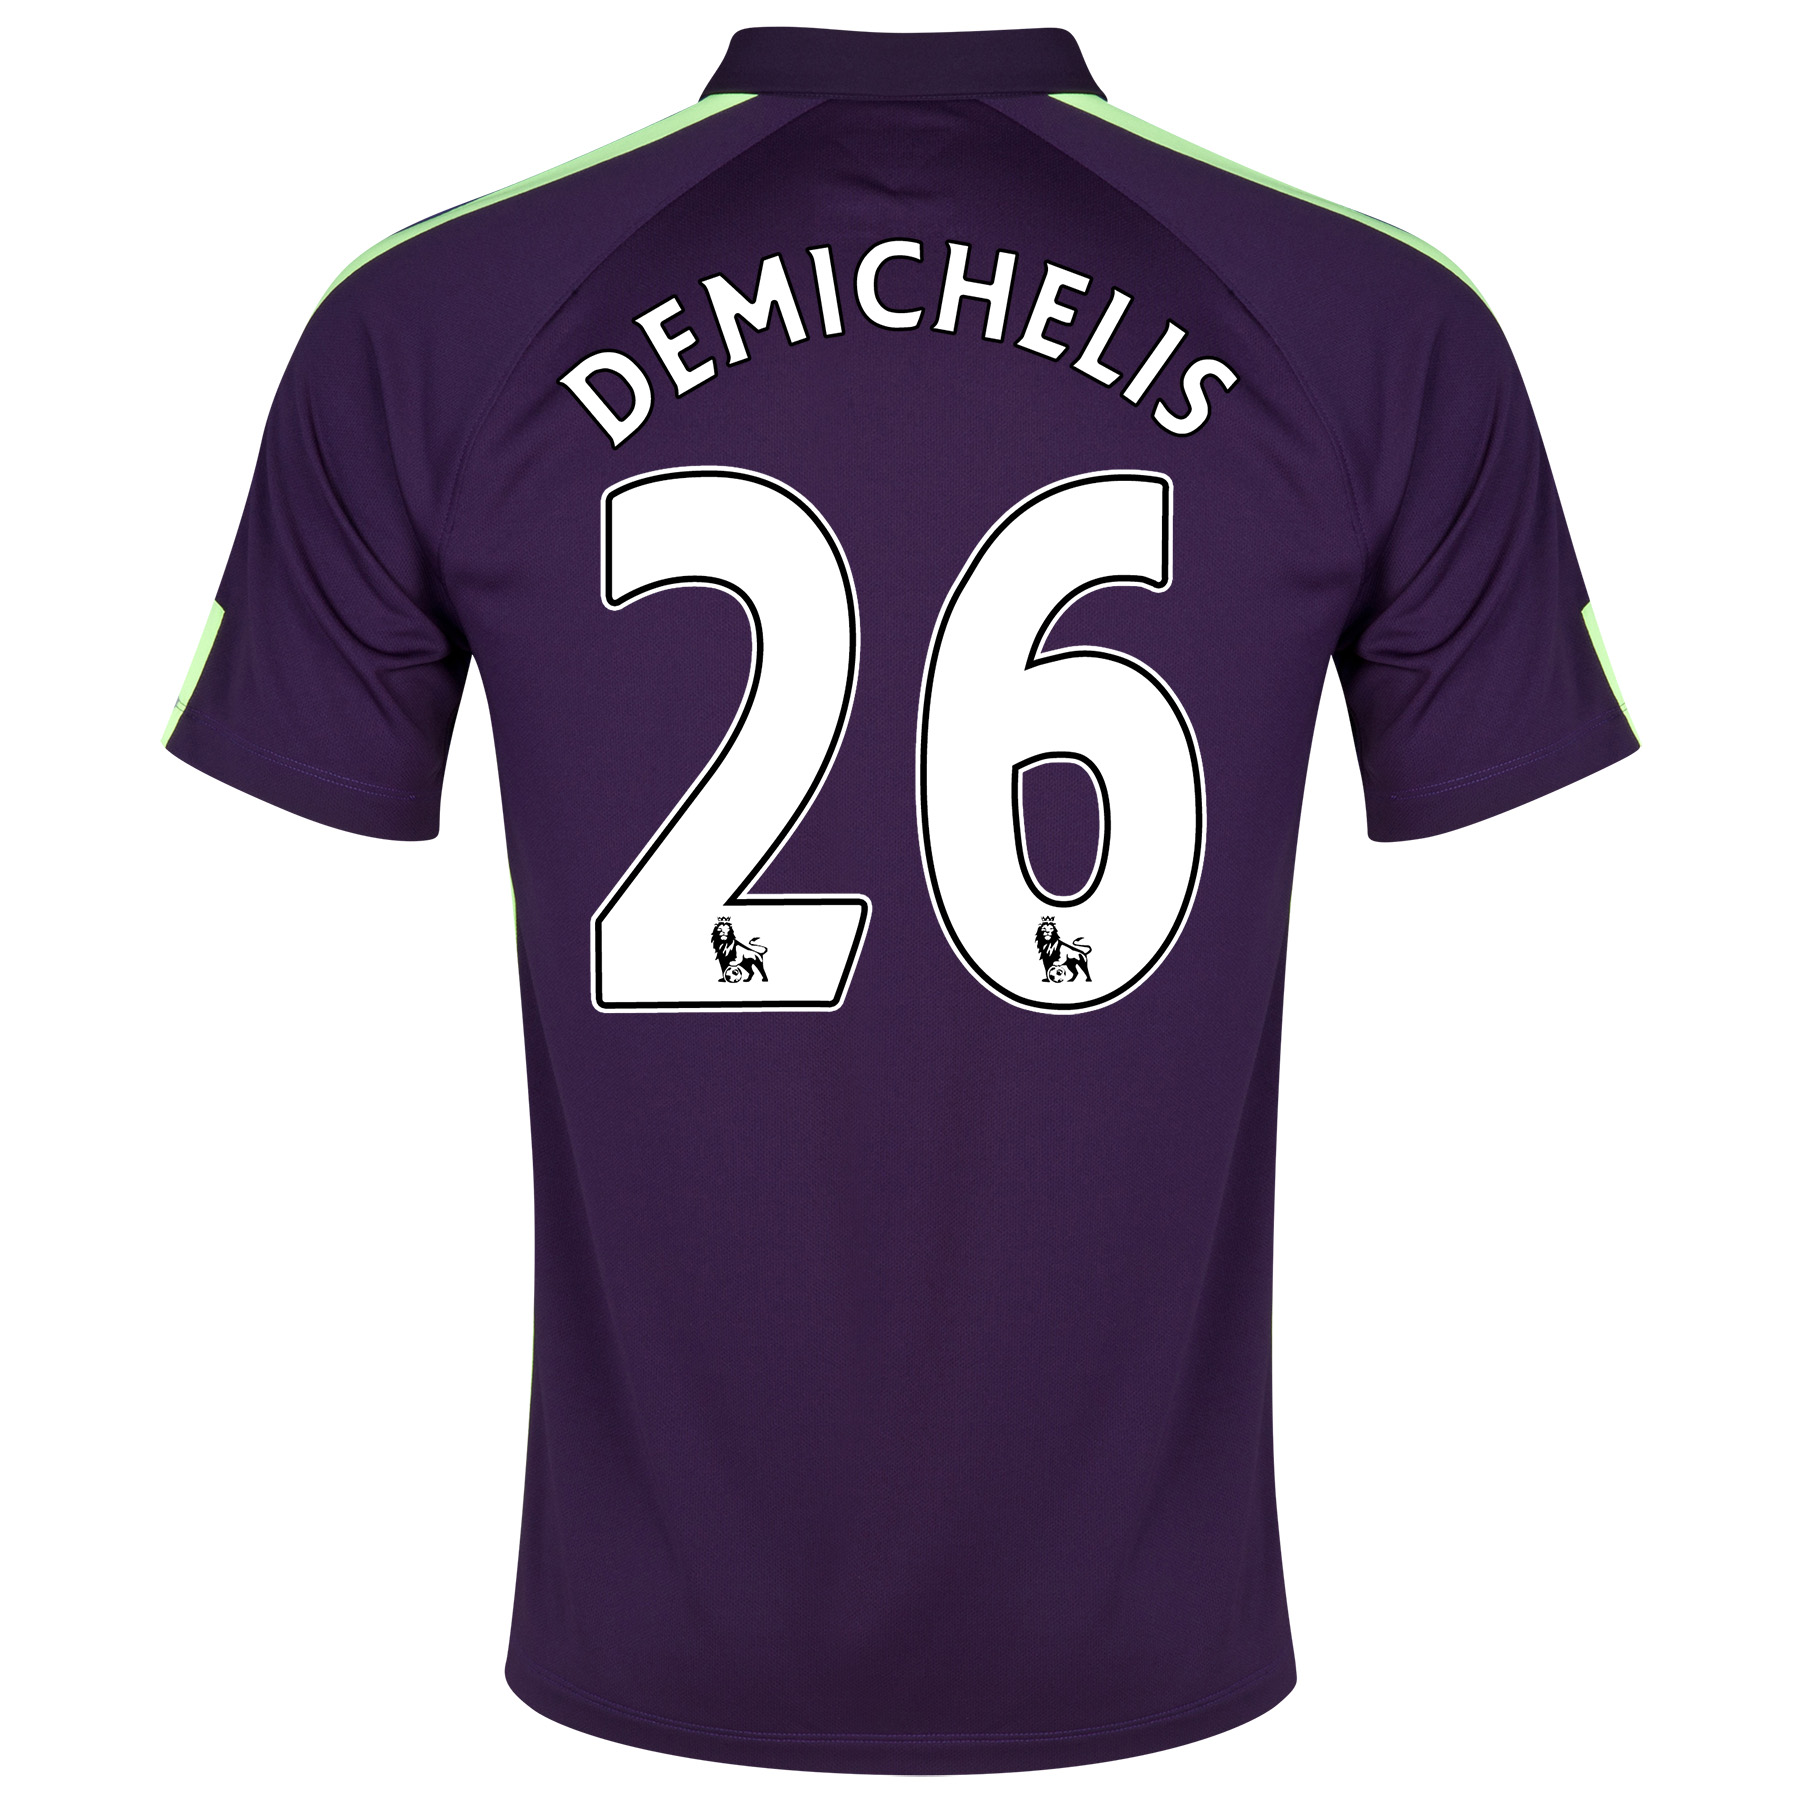 Manchester City Cup Away Shirt 2014/15 - Kids Purple with Demichelis 26 printing